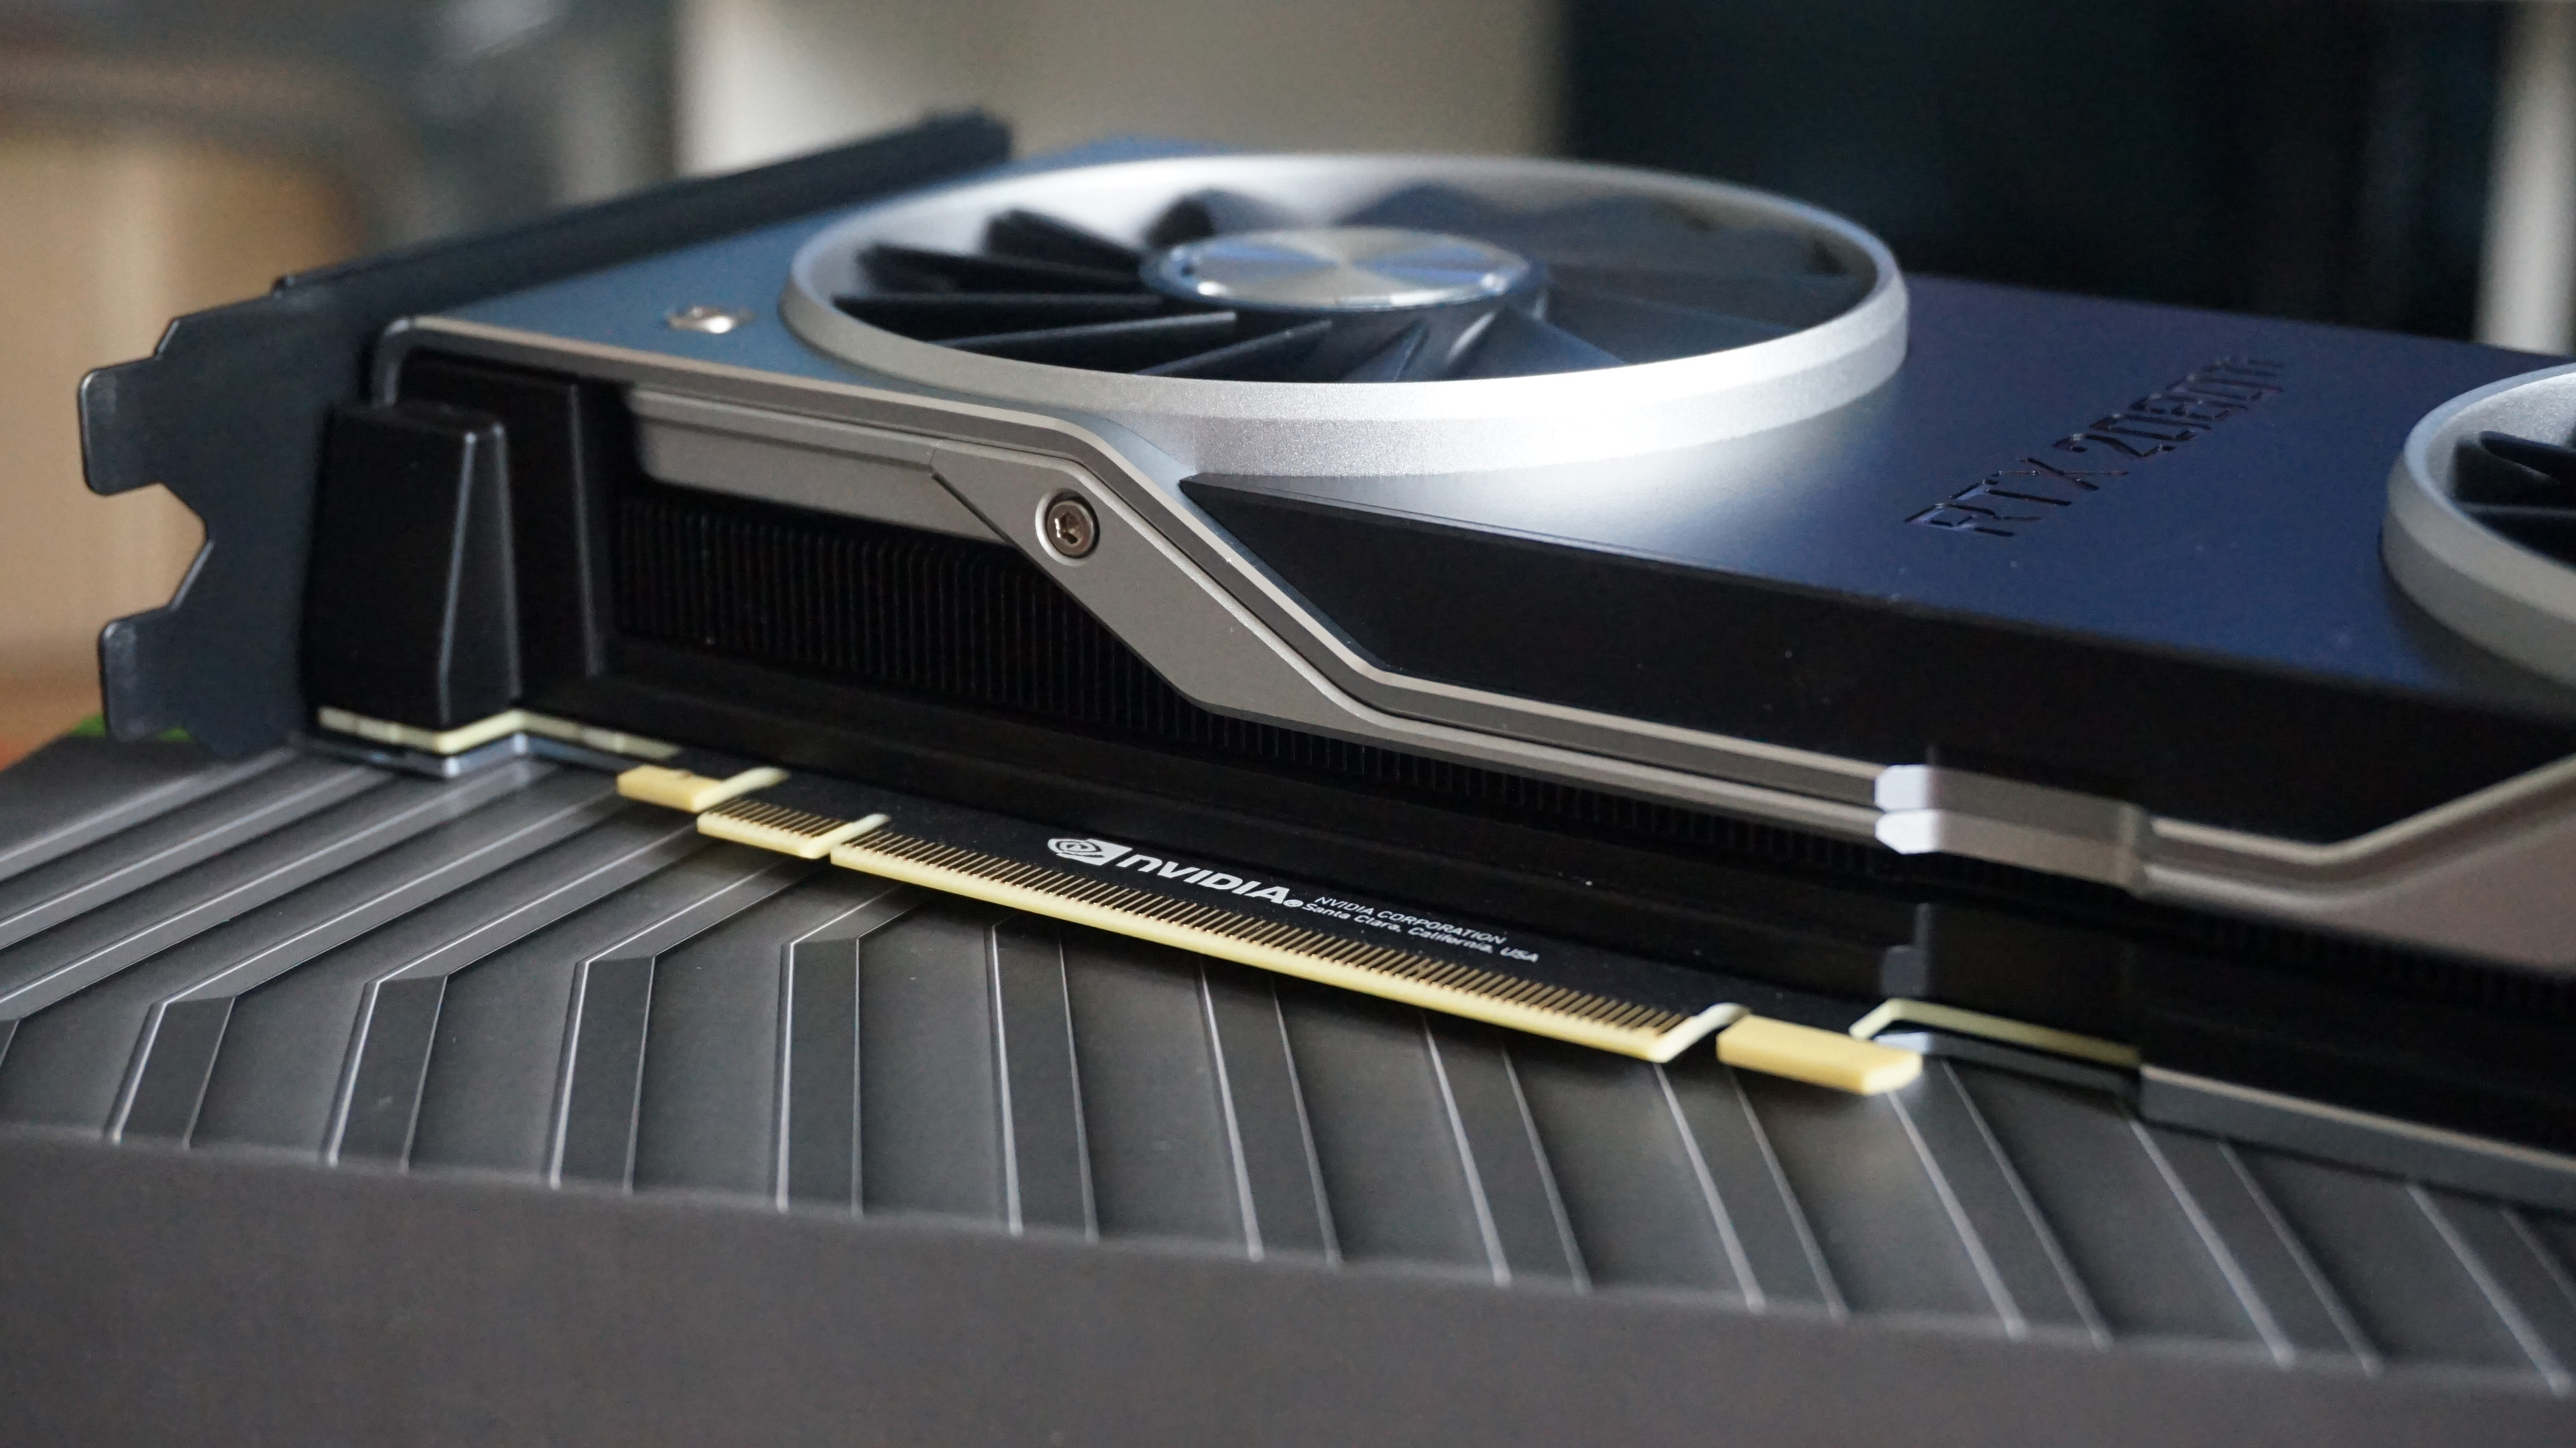 Nvidia GeForce RTX 2080Ti review: A true 4K monster card